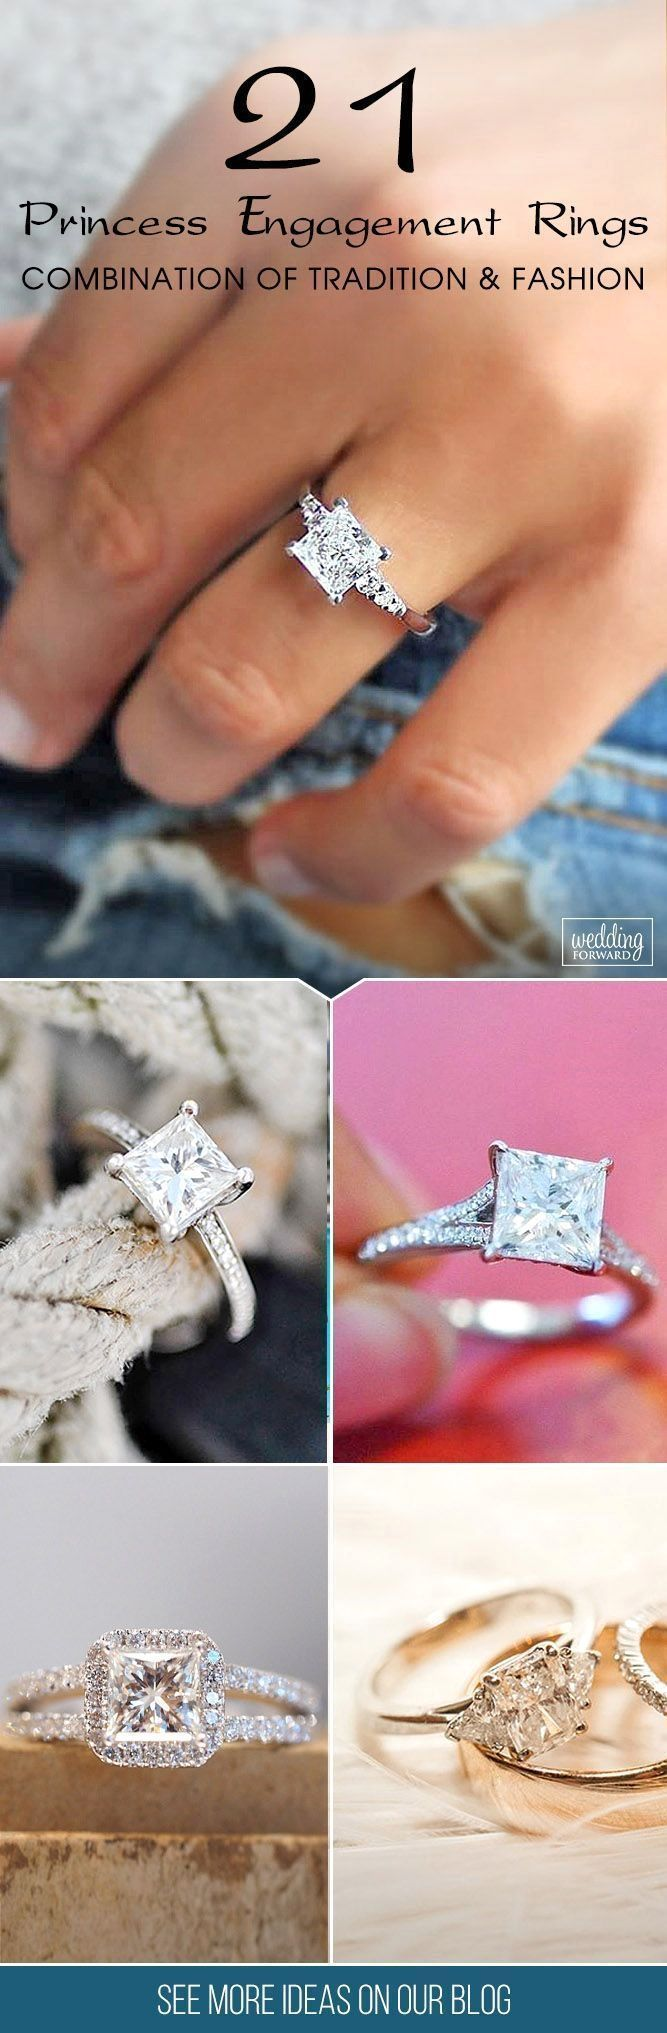 21 Breathtaking Princess Cut Engagement Rings ❤ Princess cut engagement rings are combination of tradition and fashion. Choose princess cut diamond rings you will get unique, modern shape and amazing sparkling appearance for lower price. #amazingrings #diamondengagementring